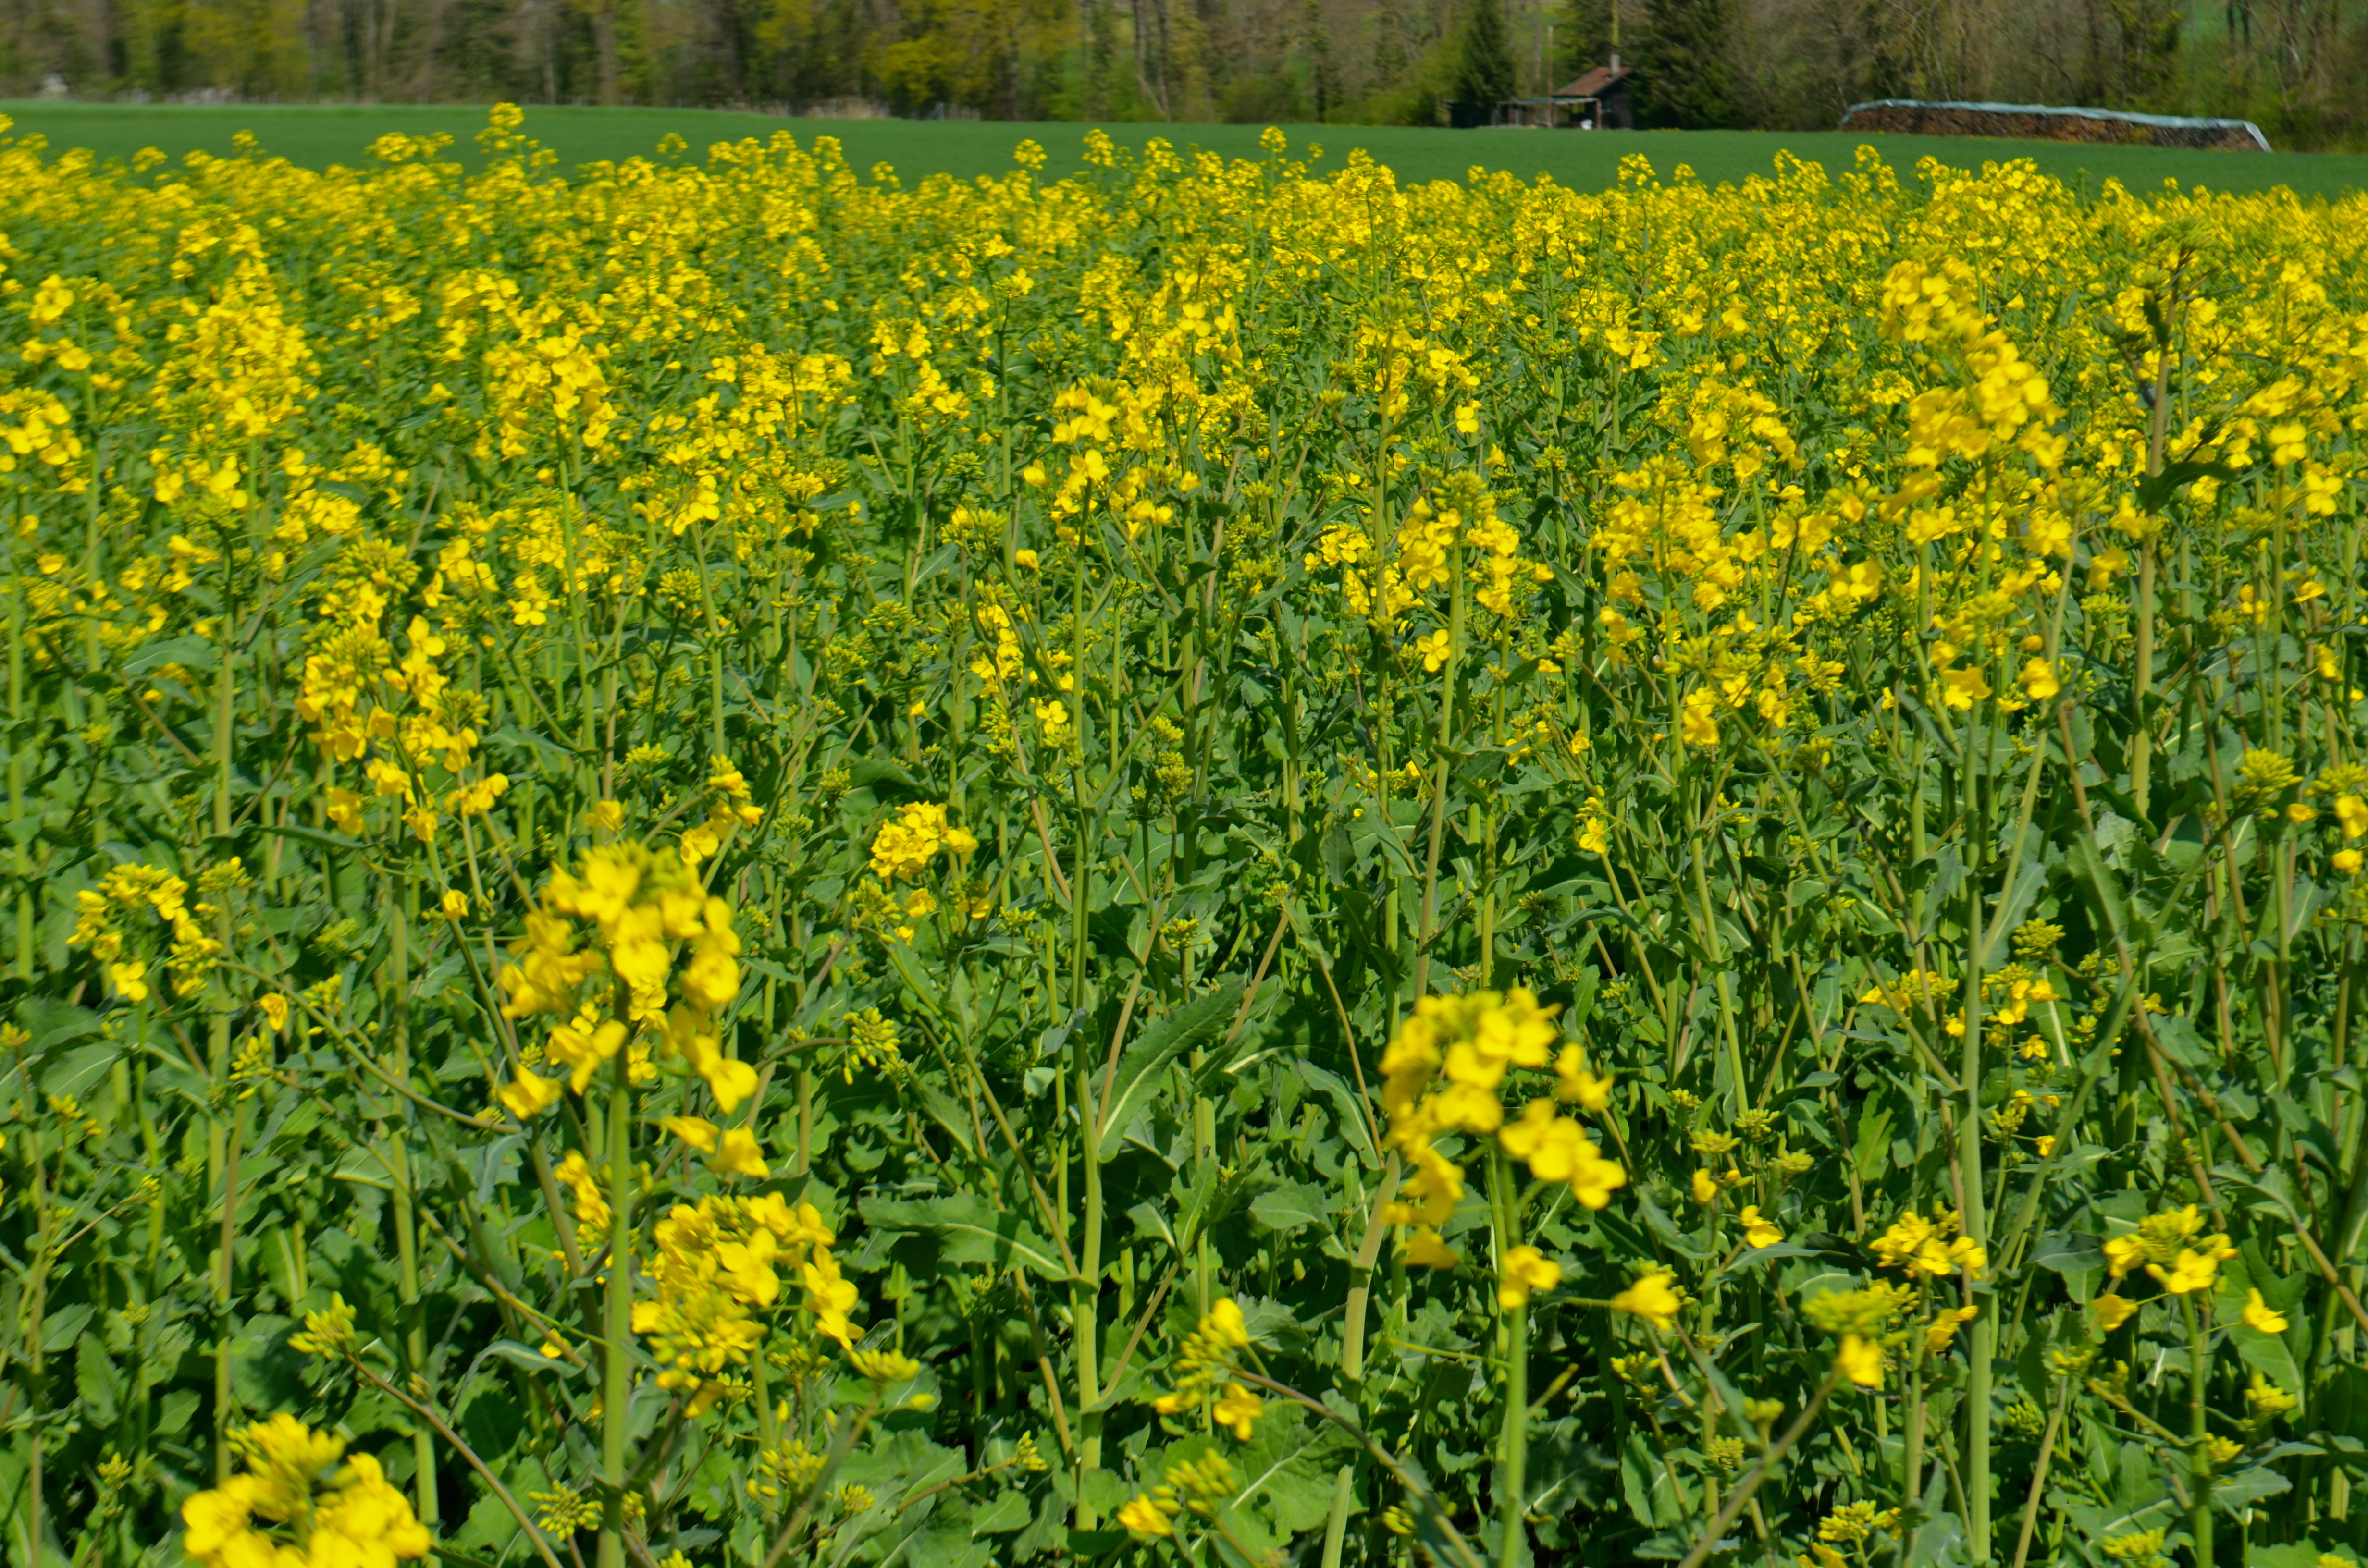 Spring is our yellow period schwingeninswitzerland related articles mightylinksfo Images